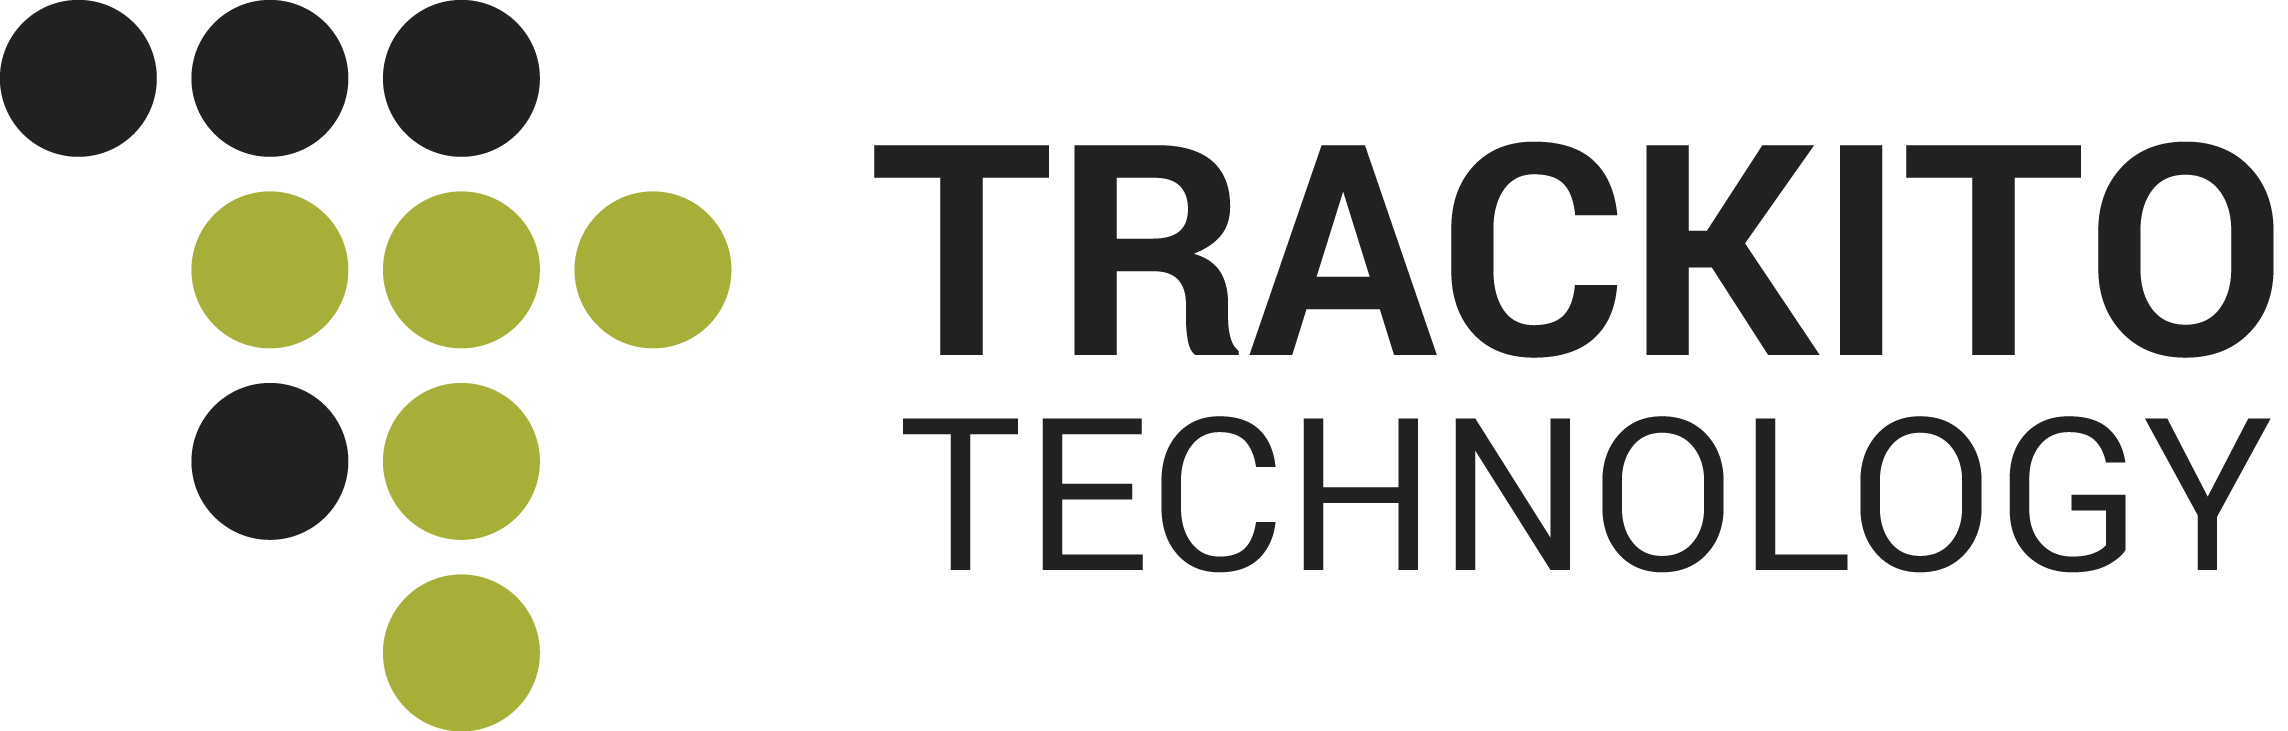 Trackito :: Trackito Technology E-shop